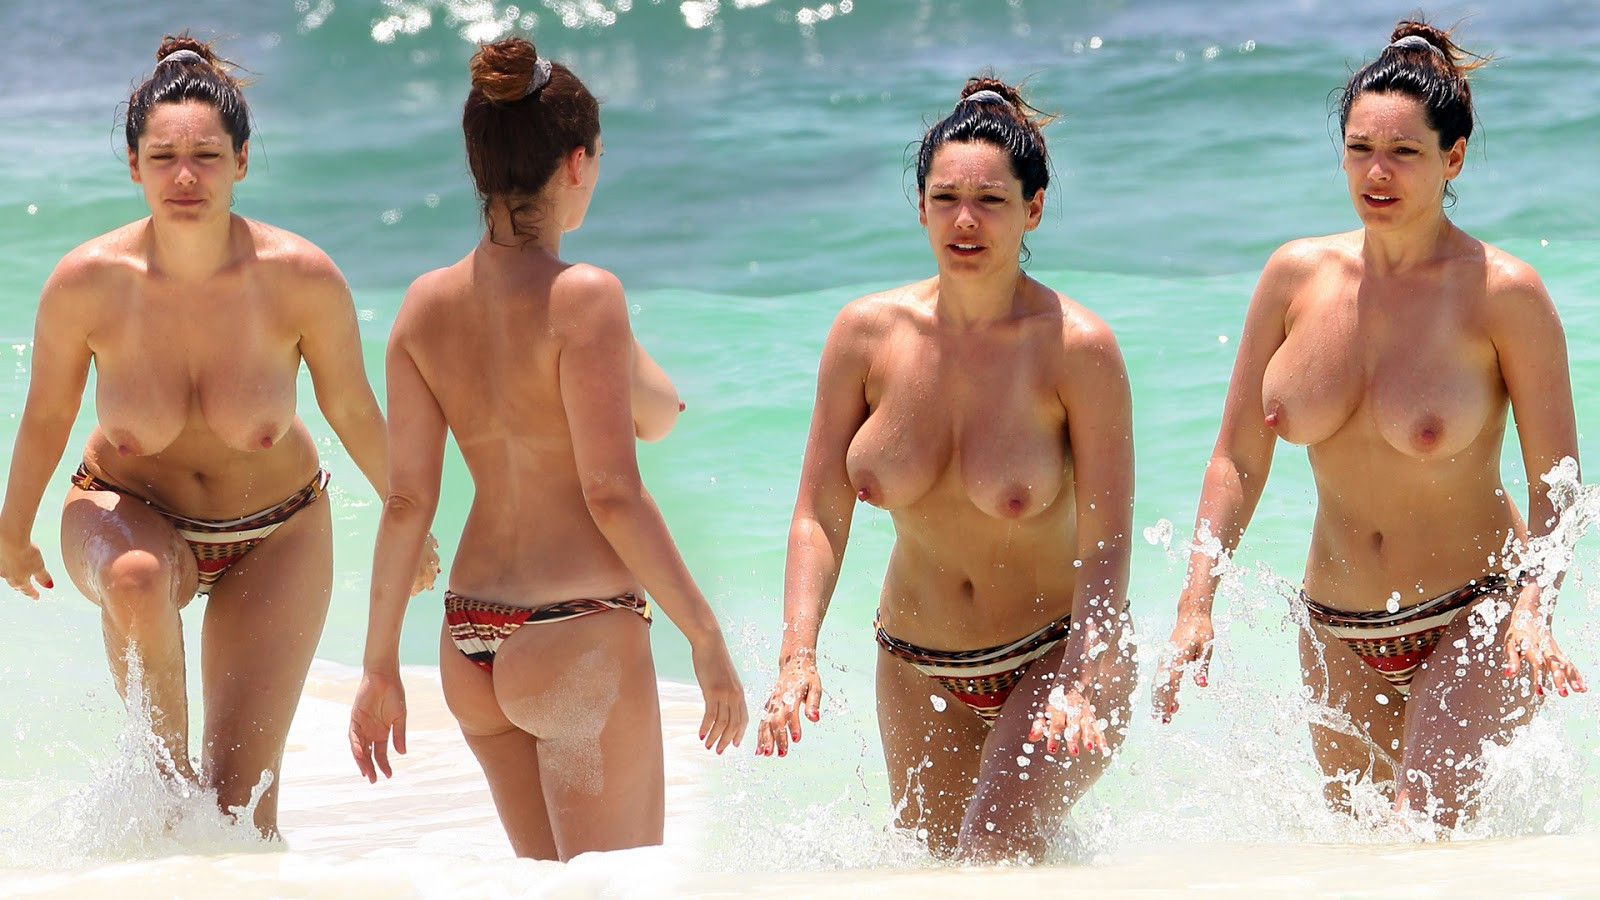 Nude celebs paparazzi video blog — photo 7